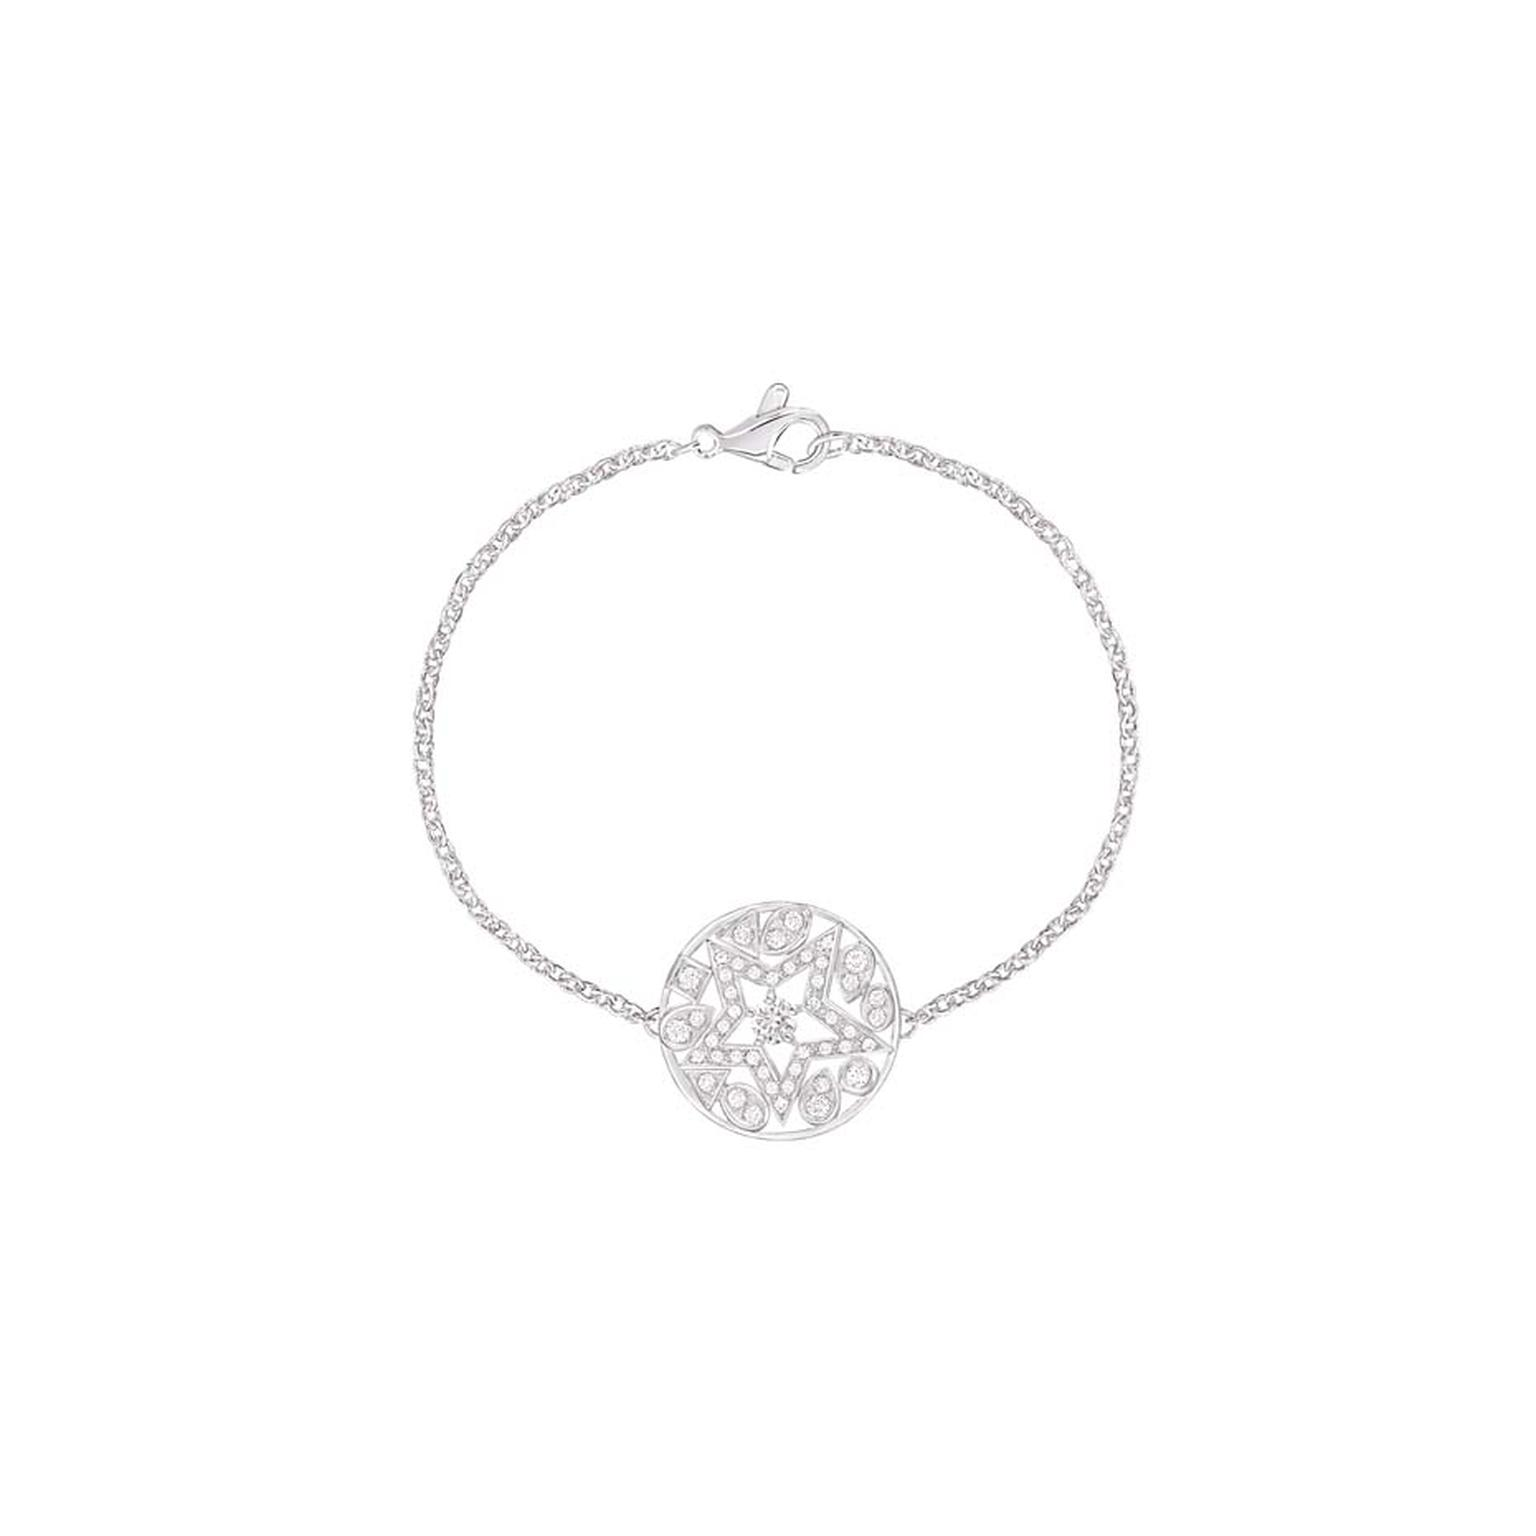 Chanel Étoile Filante white gold bracelet with brilliant-cut diamonds, from the Comete collection.